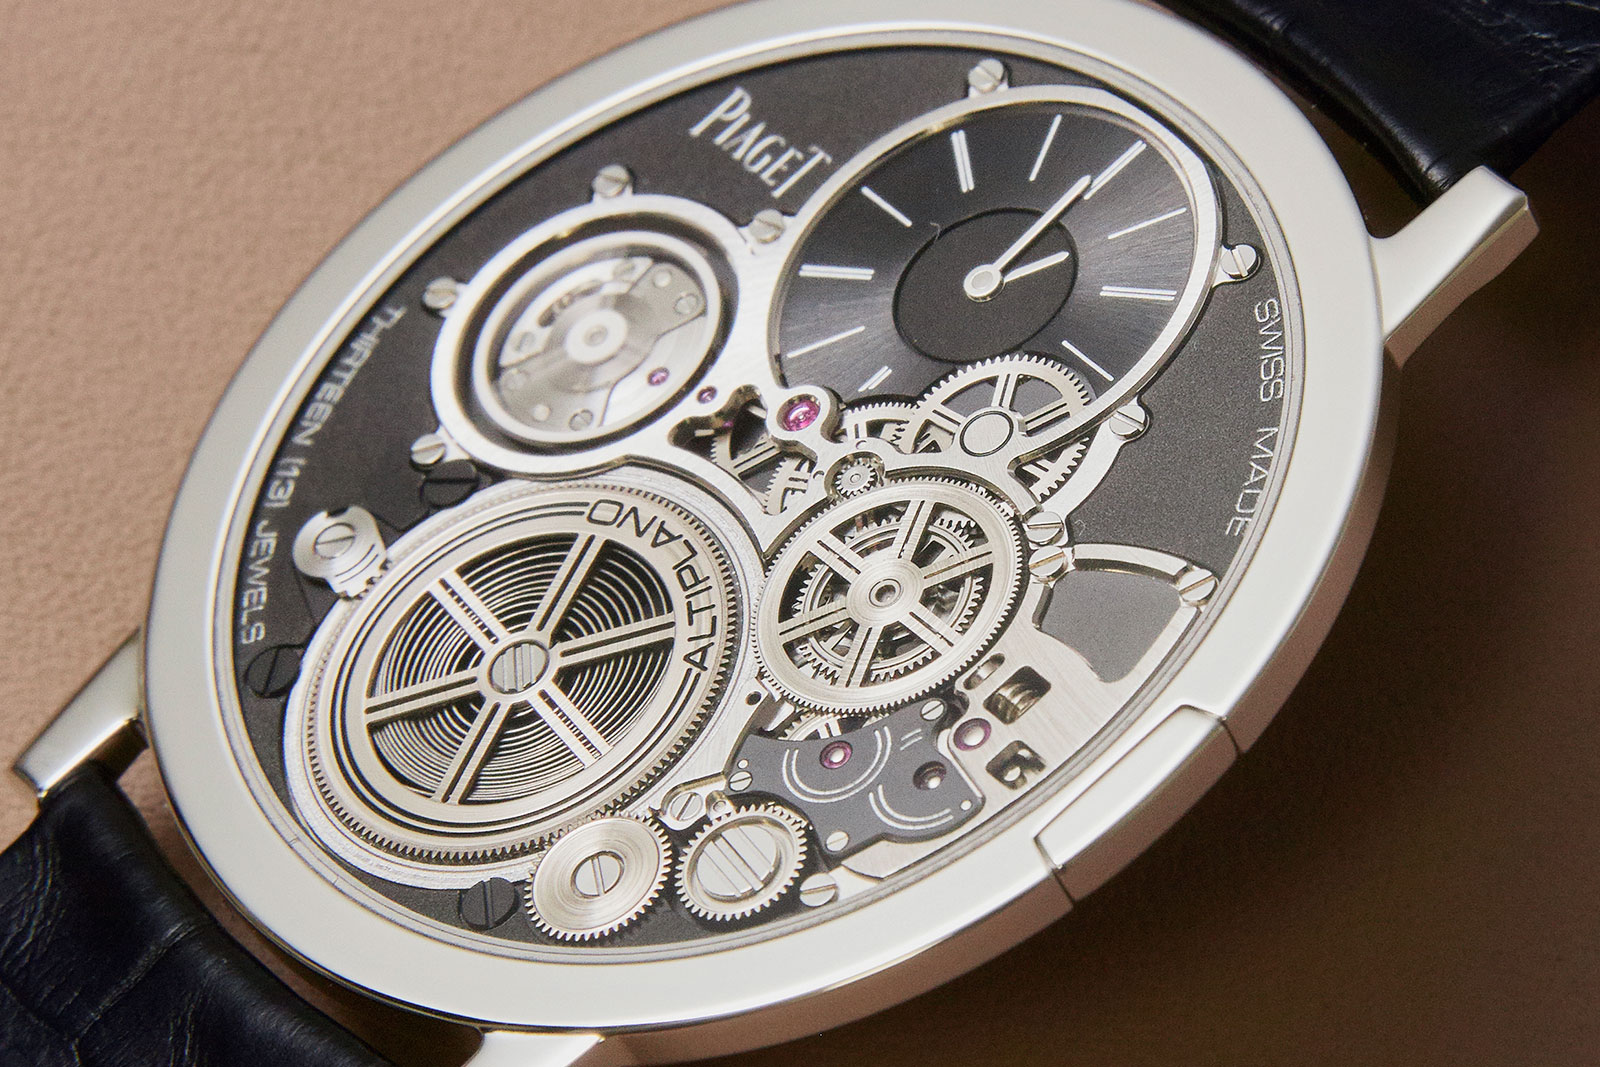 Piaget Altiplano Ultimate Concept watch 4